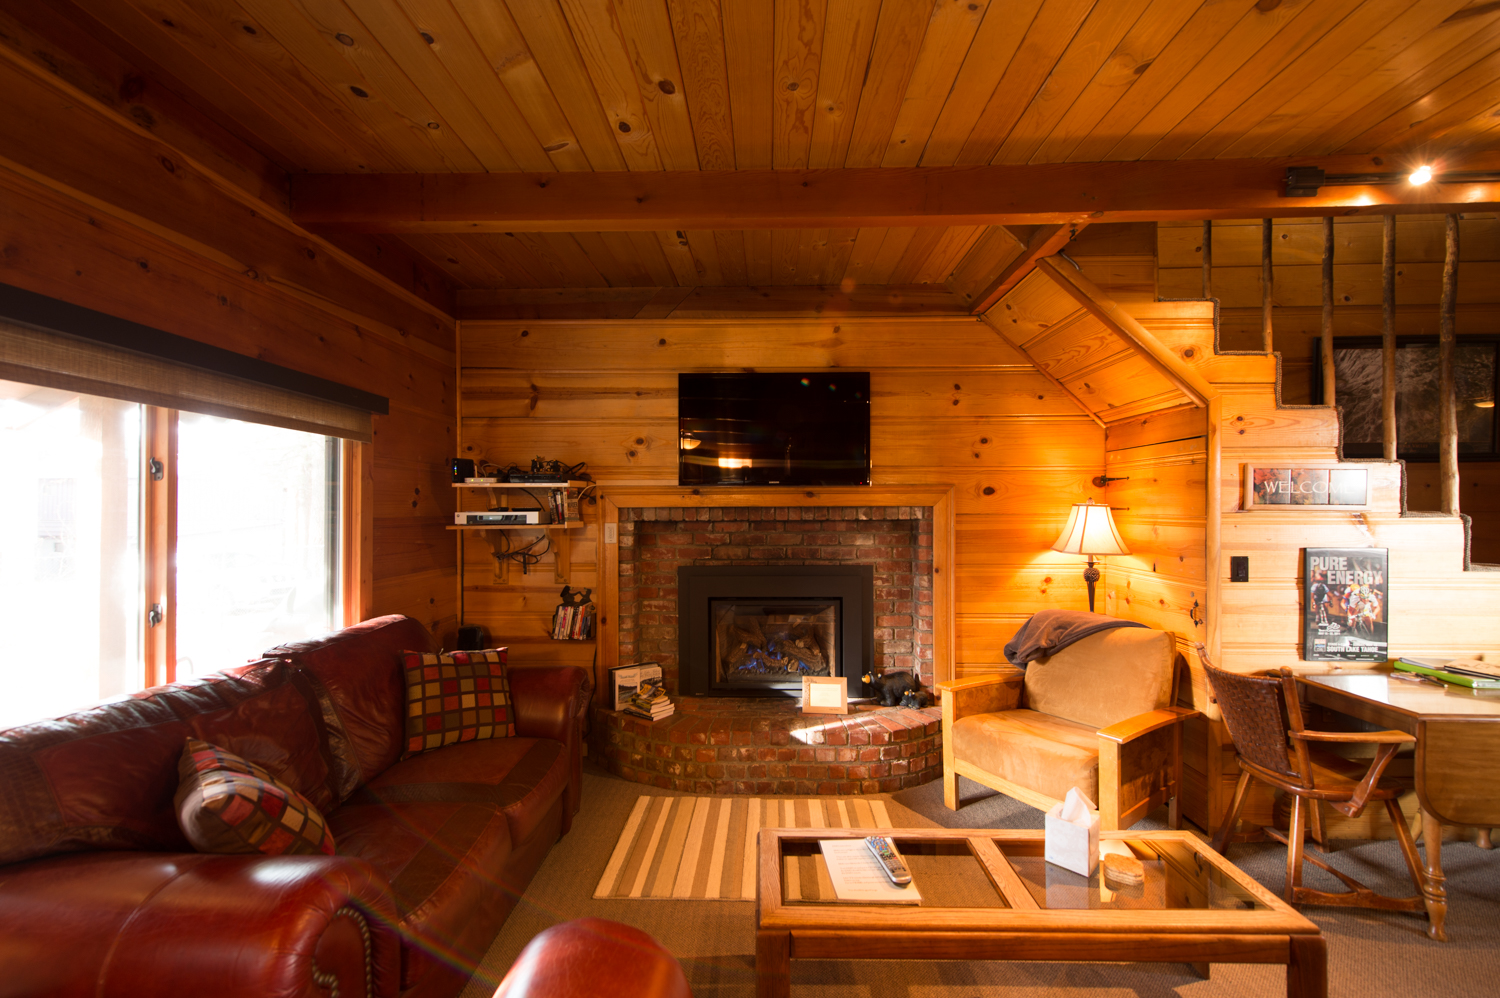 vacation image gallery rd lake cabin hotel ca cabins property home tahoe of south us this alice